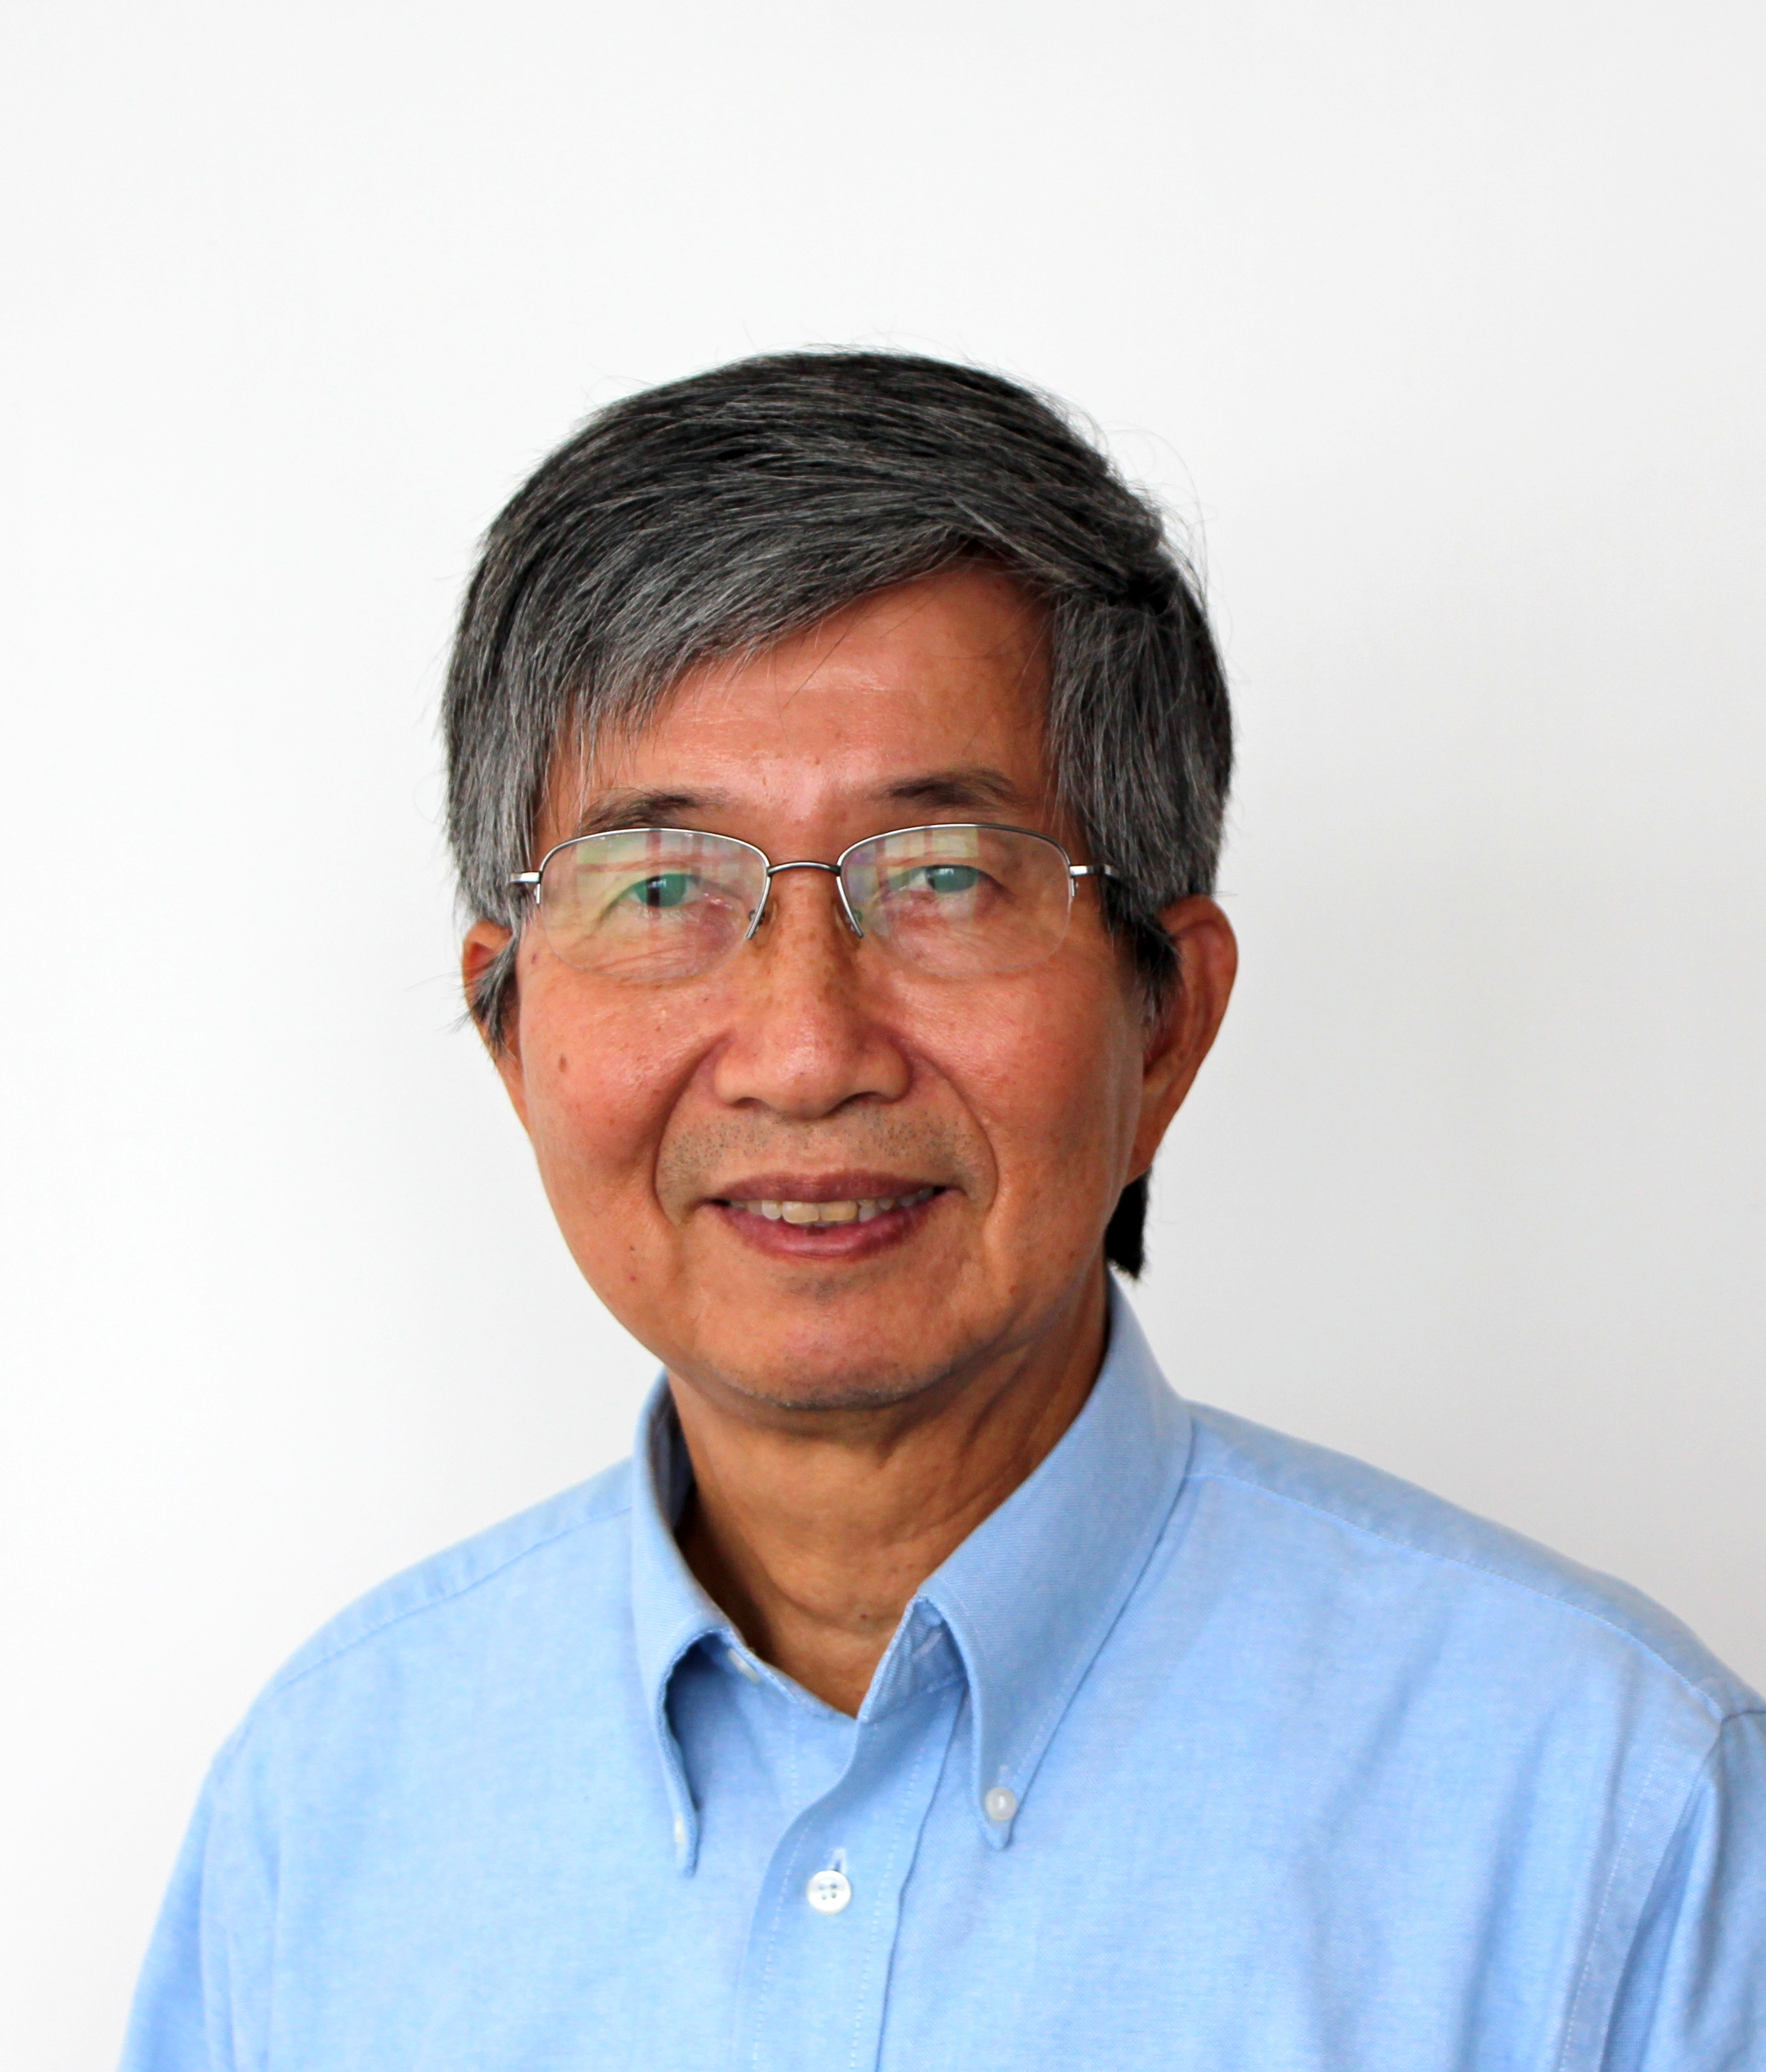 Prof Ching Wan TANG is awarded the Kyoto Prize in Advanced Technology 2019